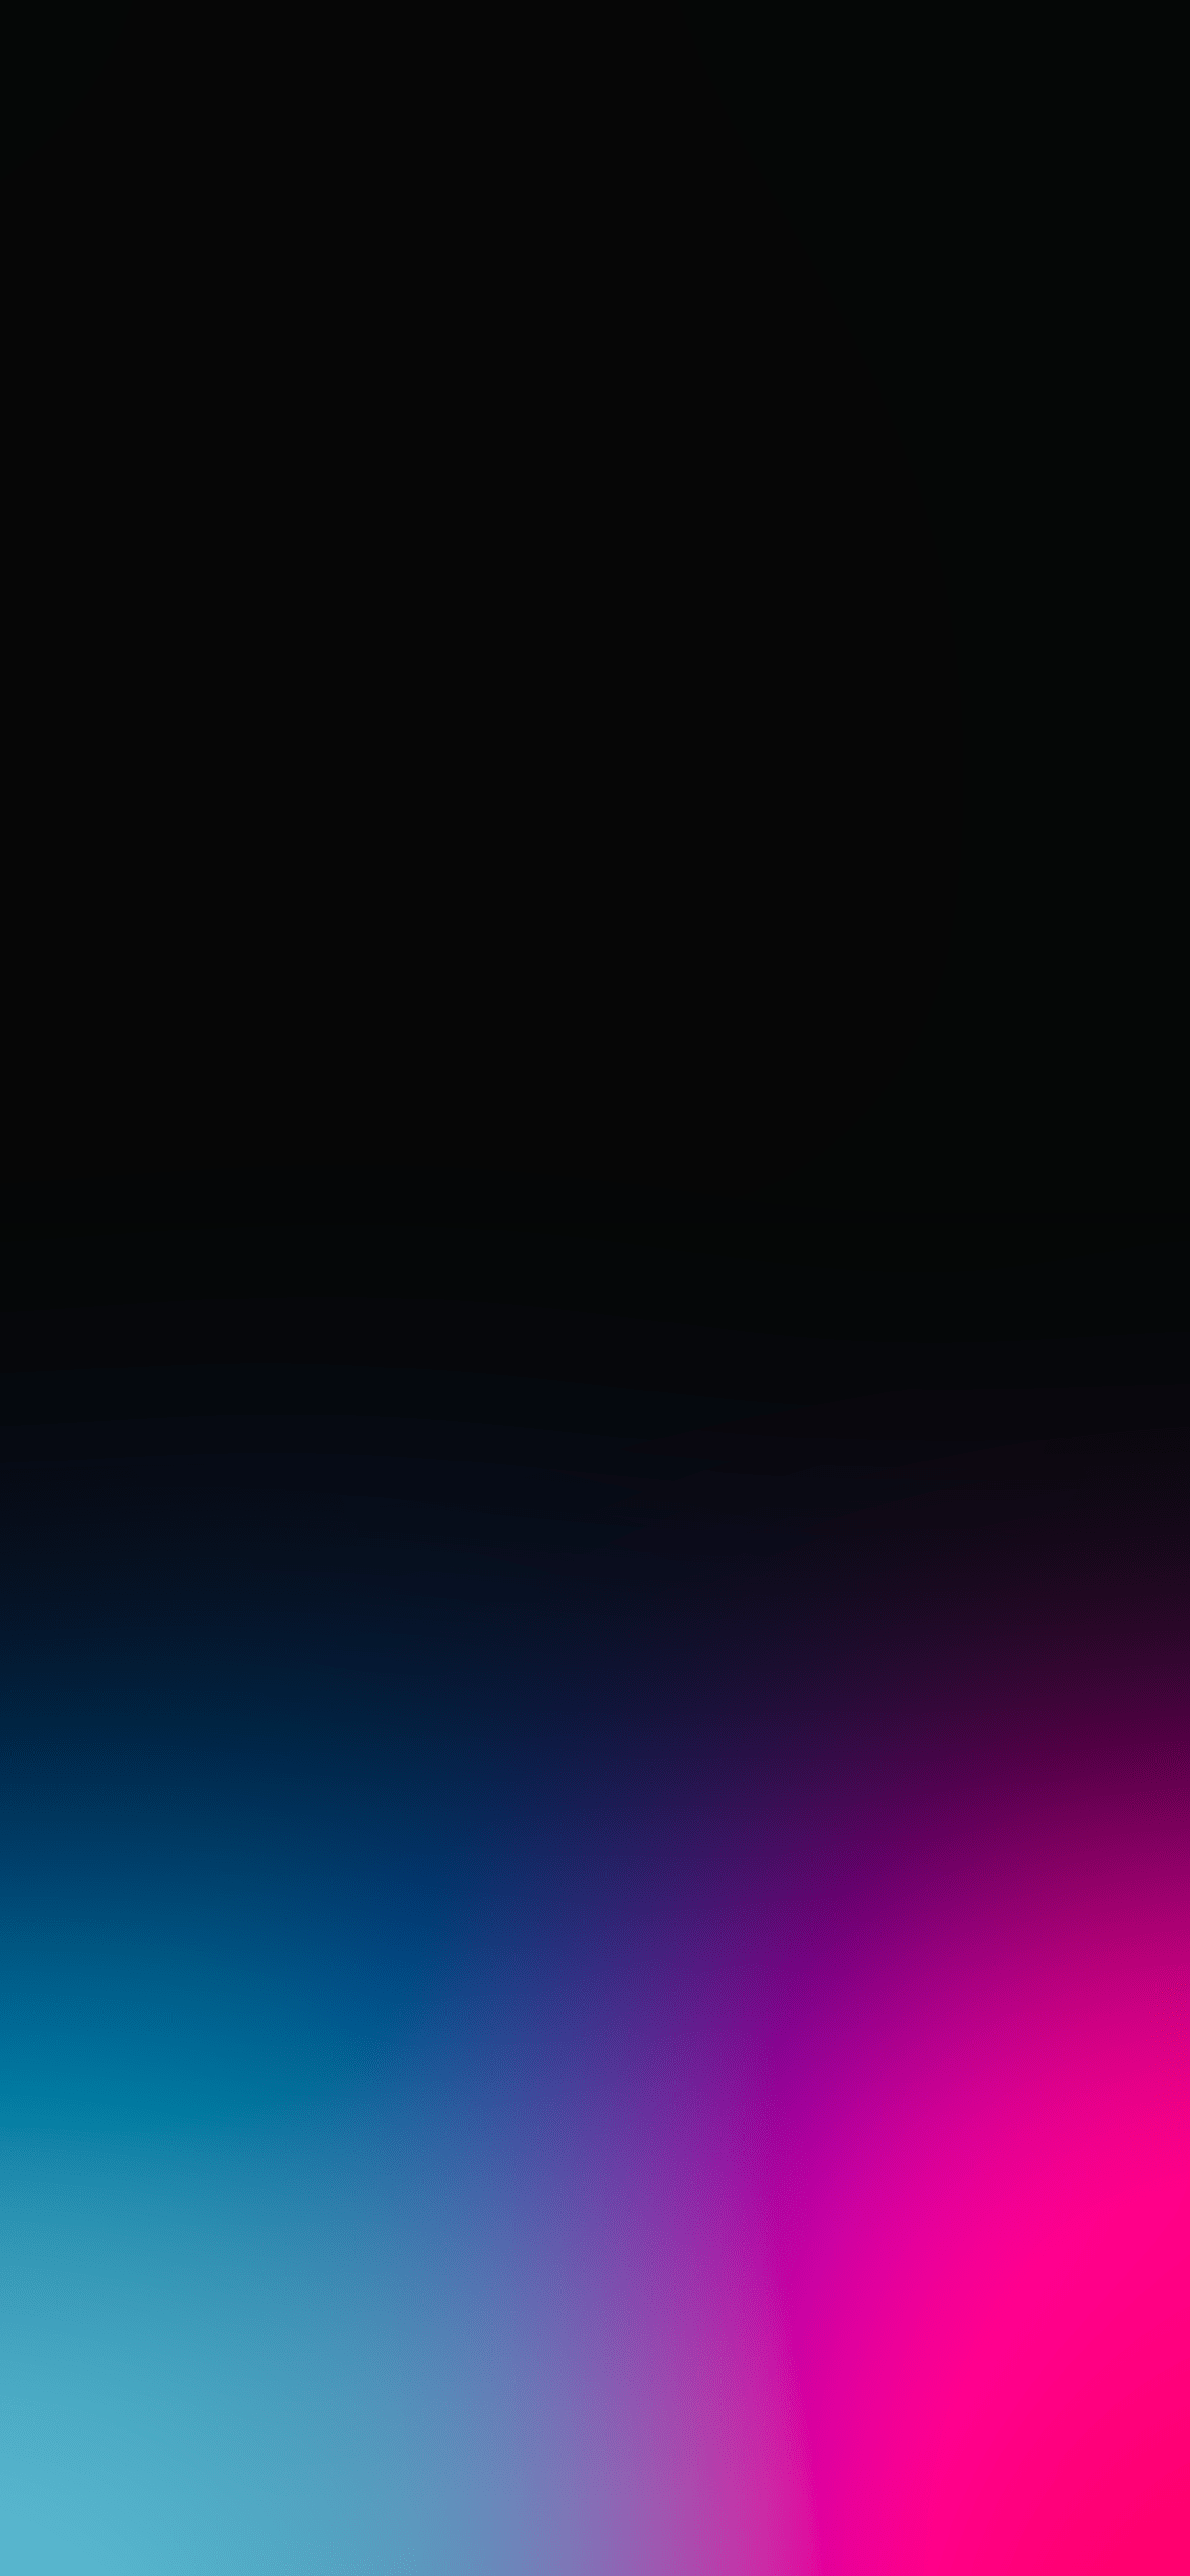 iPhone wallpapers gradient colors 2 Gradient Colors